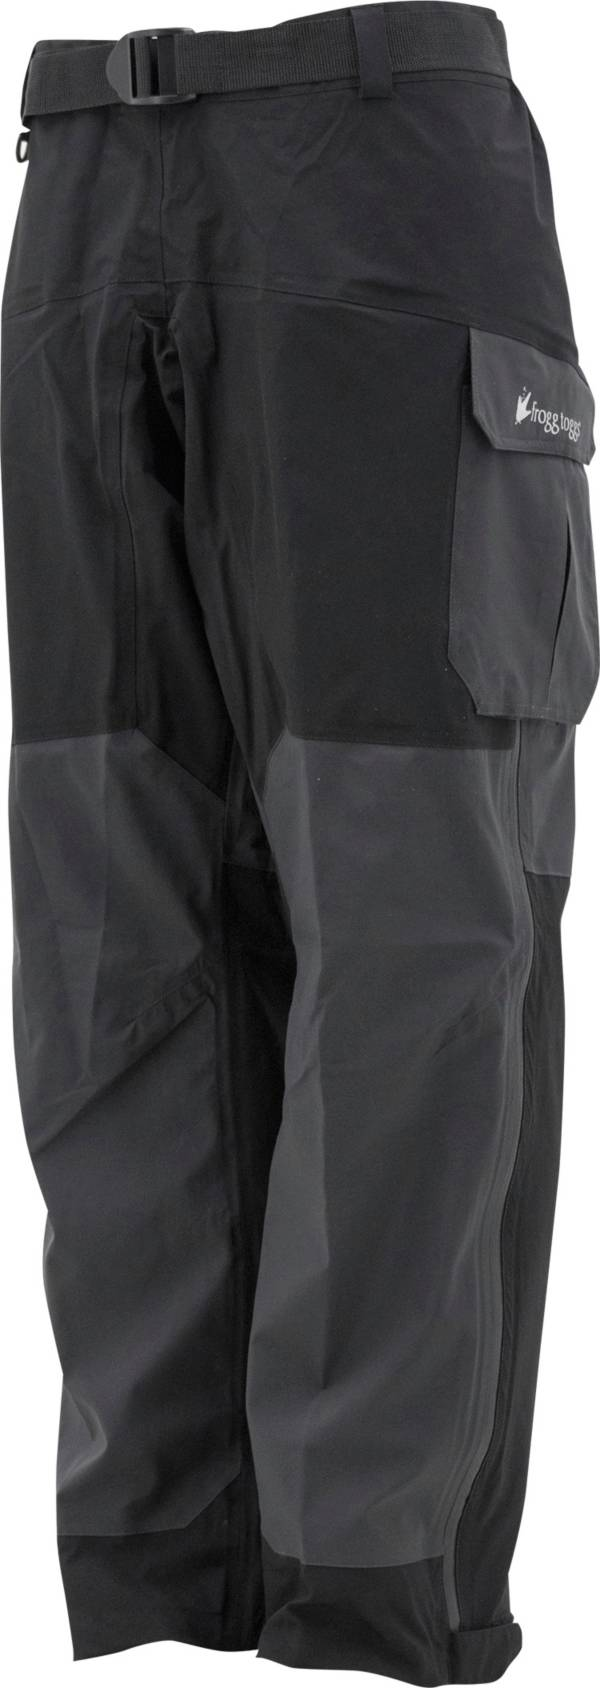 frogg toggs Men's Pilot Guide Fishing Pants (Regular and Big & Tall) product image